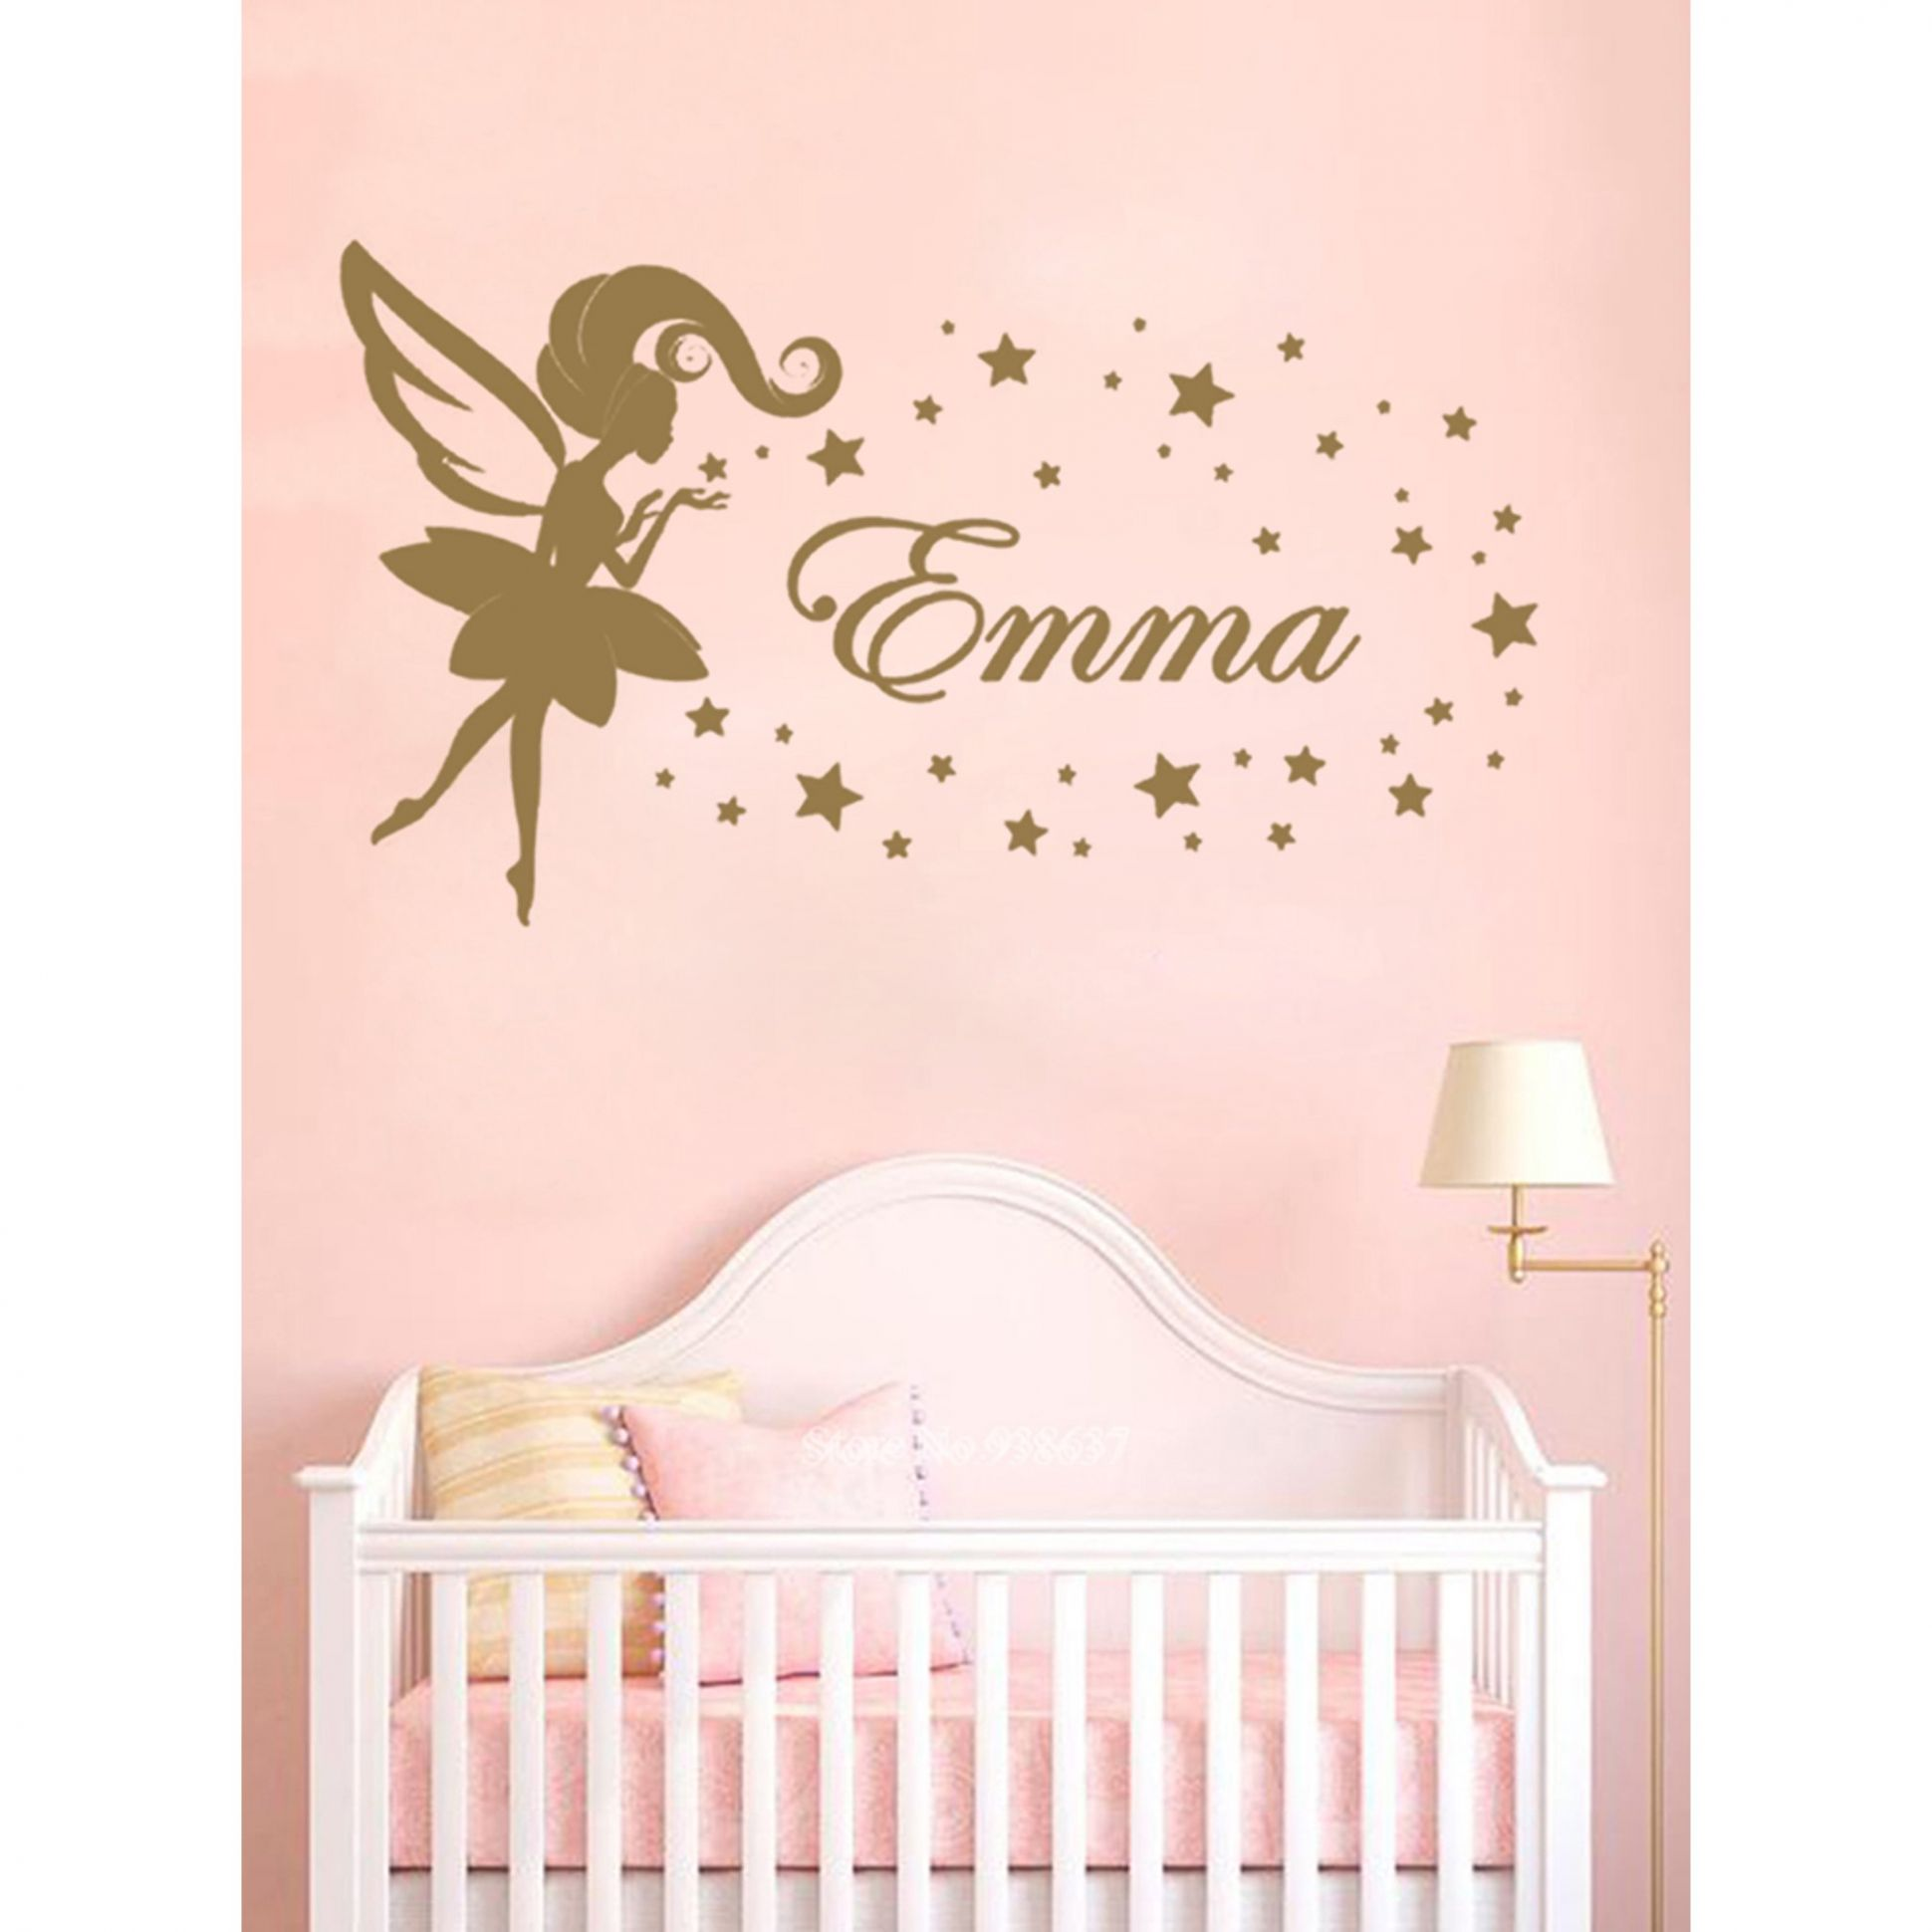 New beauty decoration personality girl baby room decal house decoration  custom name wall sticker wall sticker - baby room decals